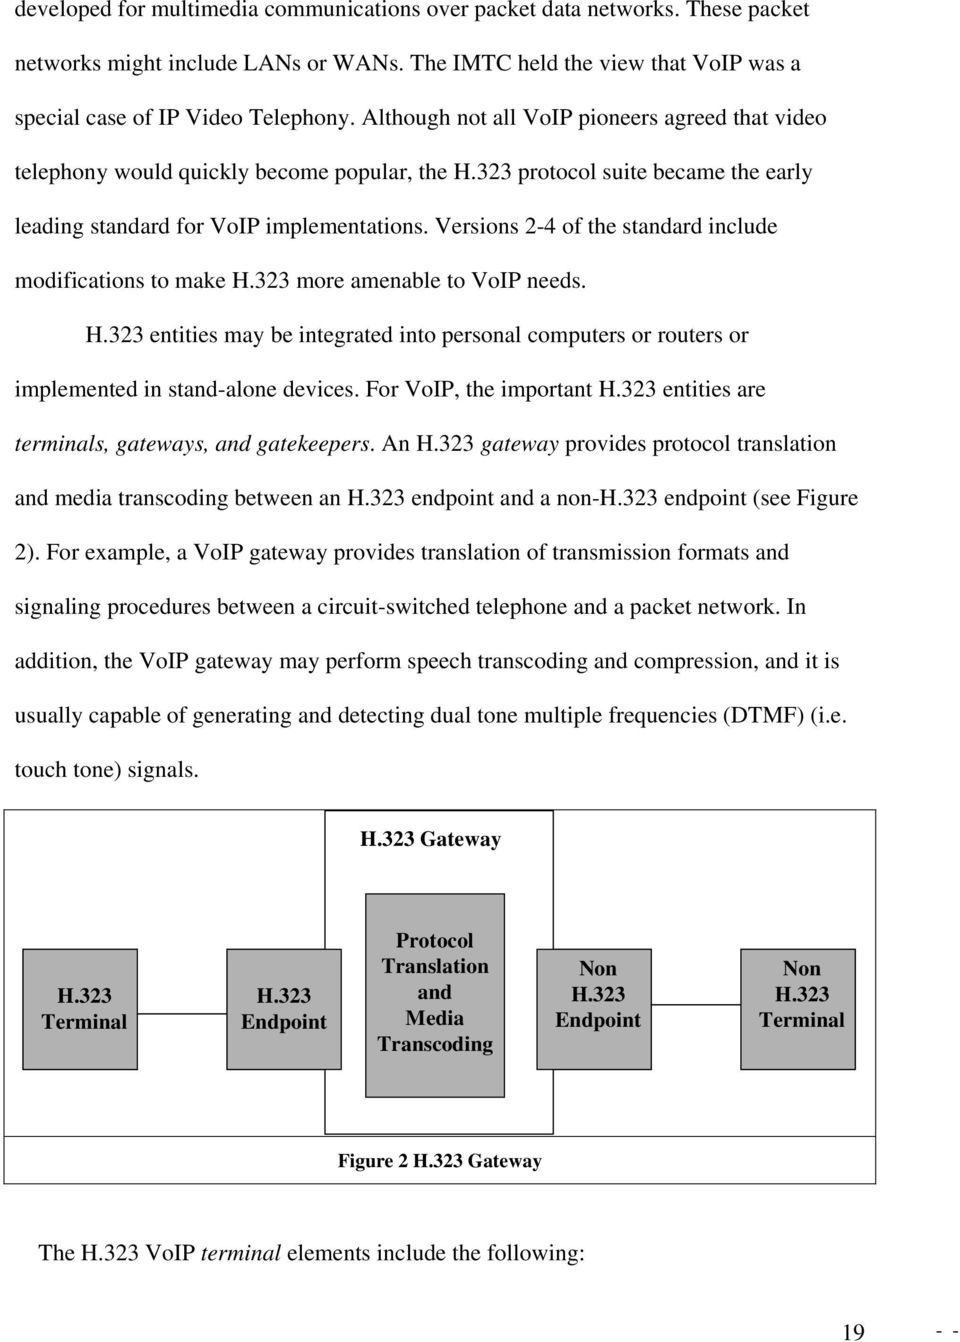 Versions 2-4 of the standard include modifications to make H.323 more amenable to VoIP needs. H.323 entities may be integrated into personal computers or routers or implemented in stand-alone devices.